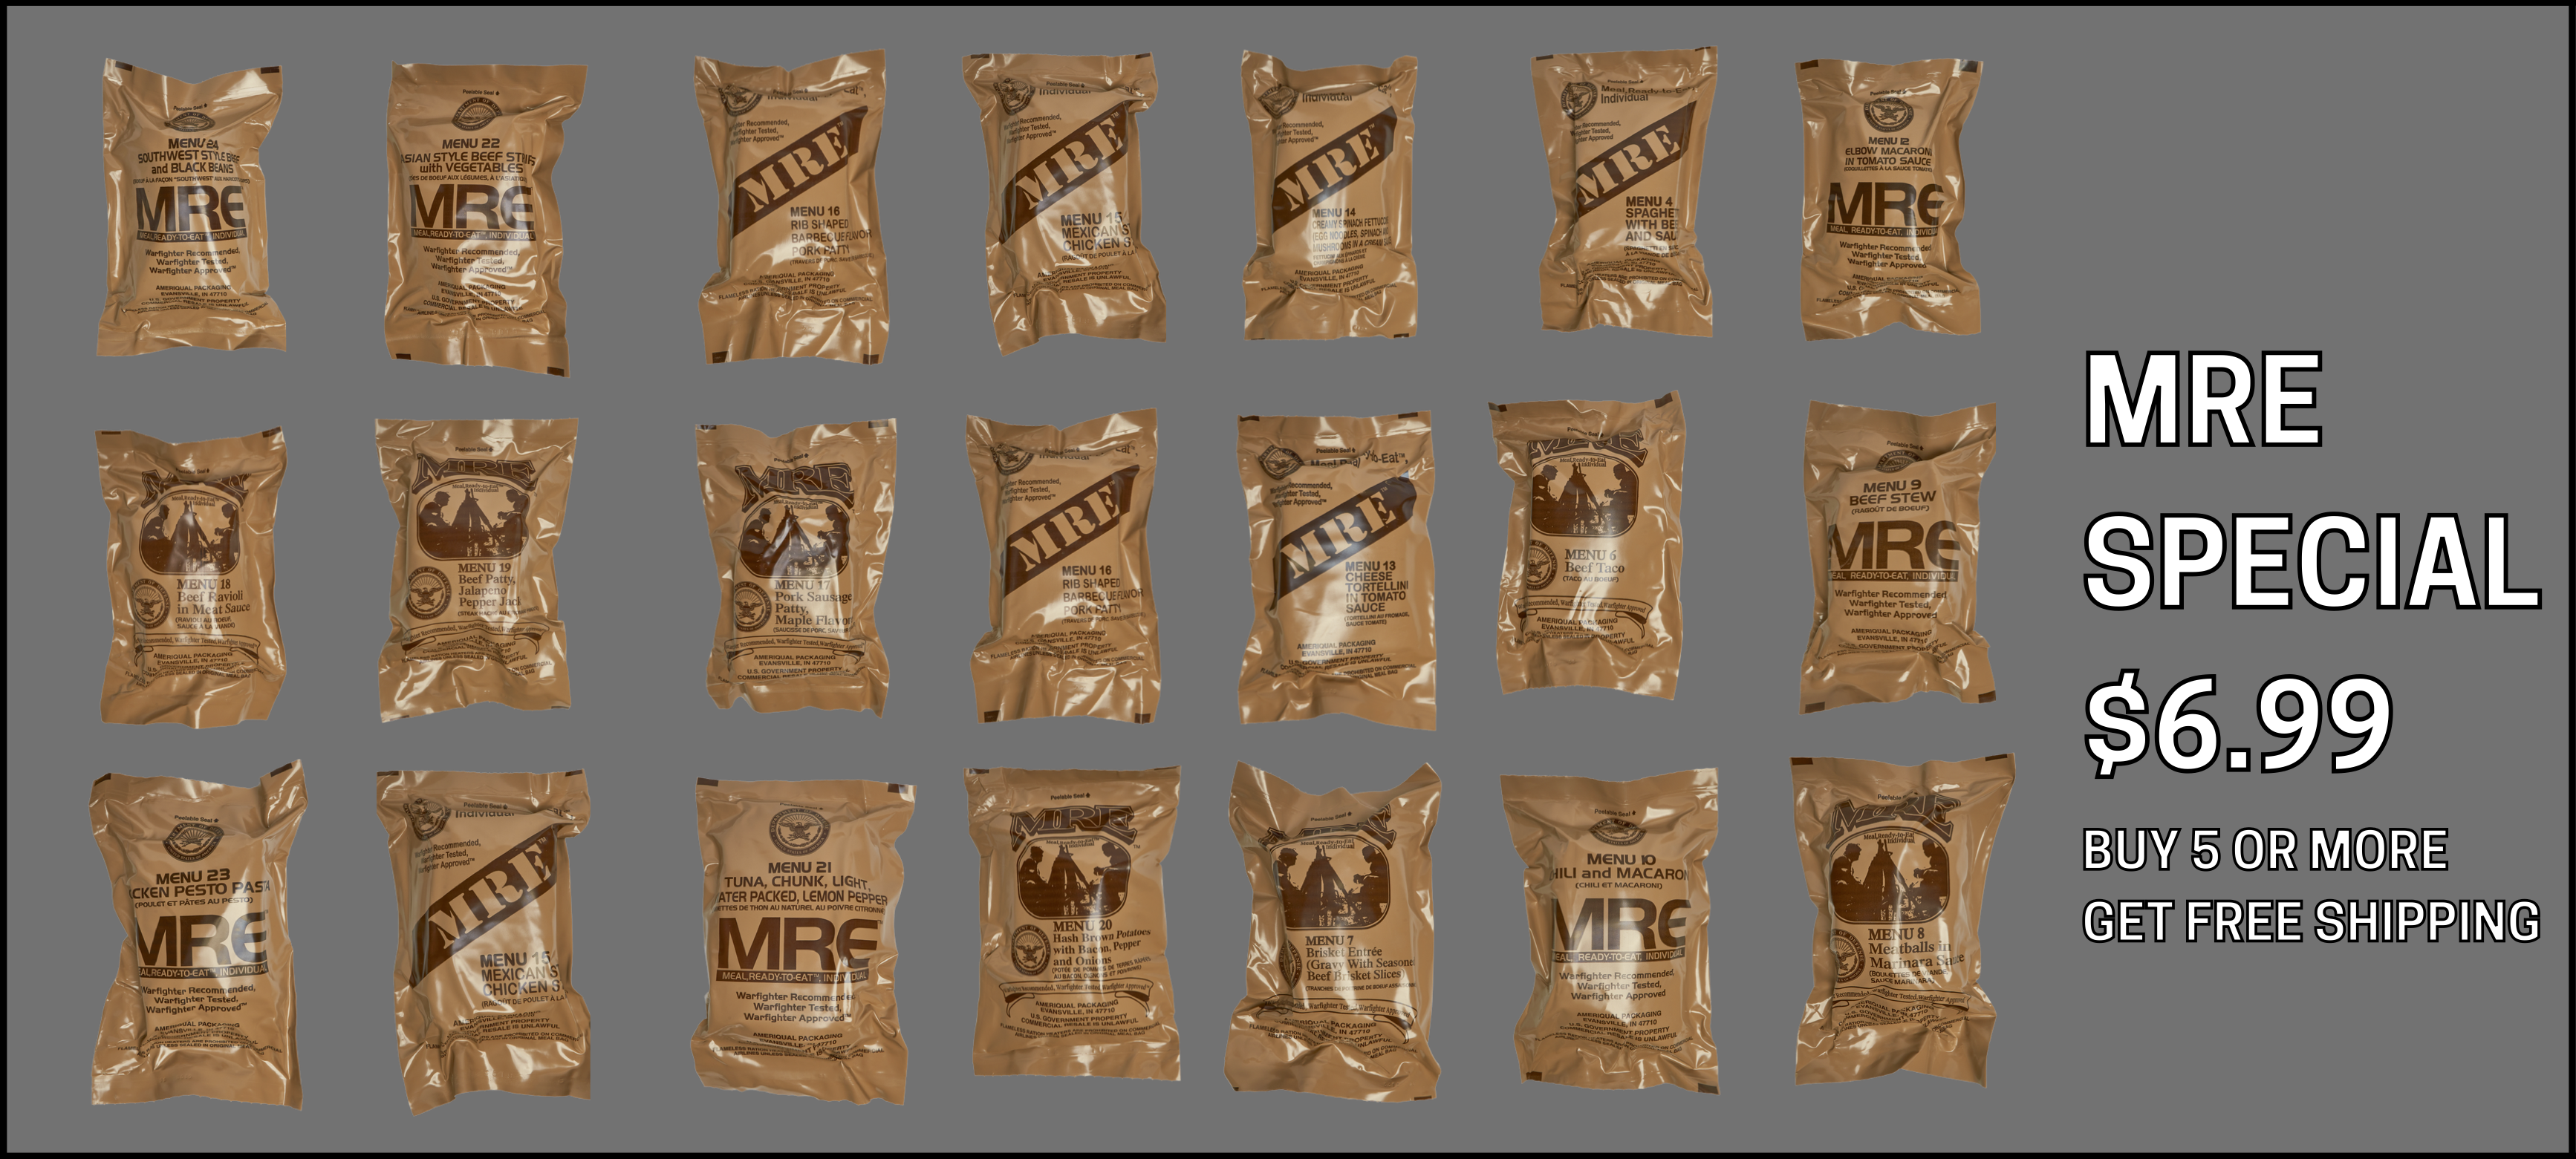 mre-special-1-.png